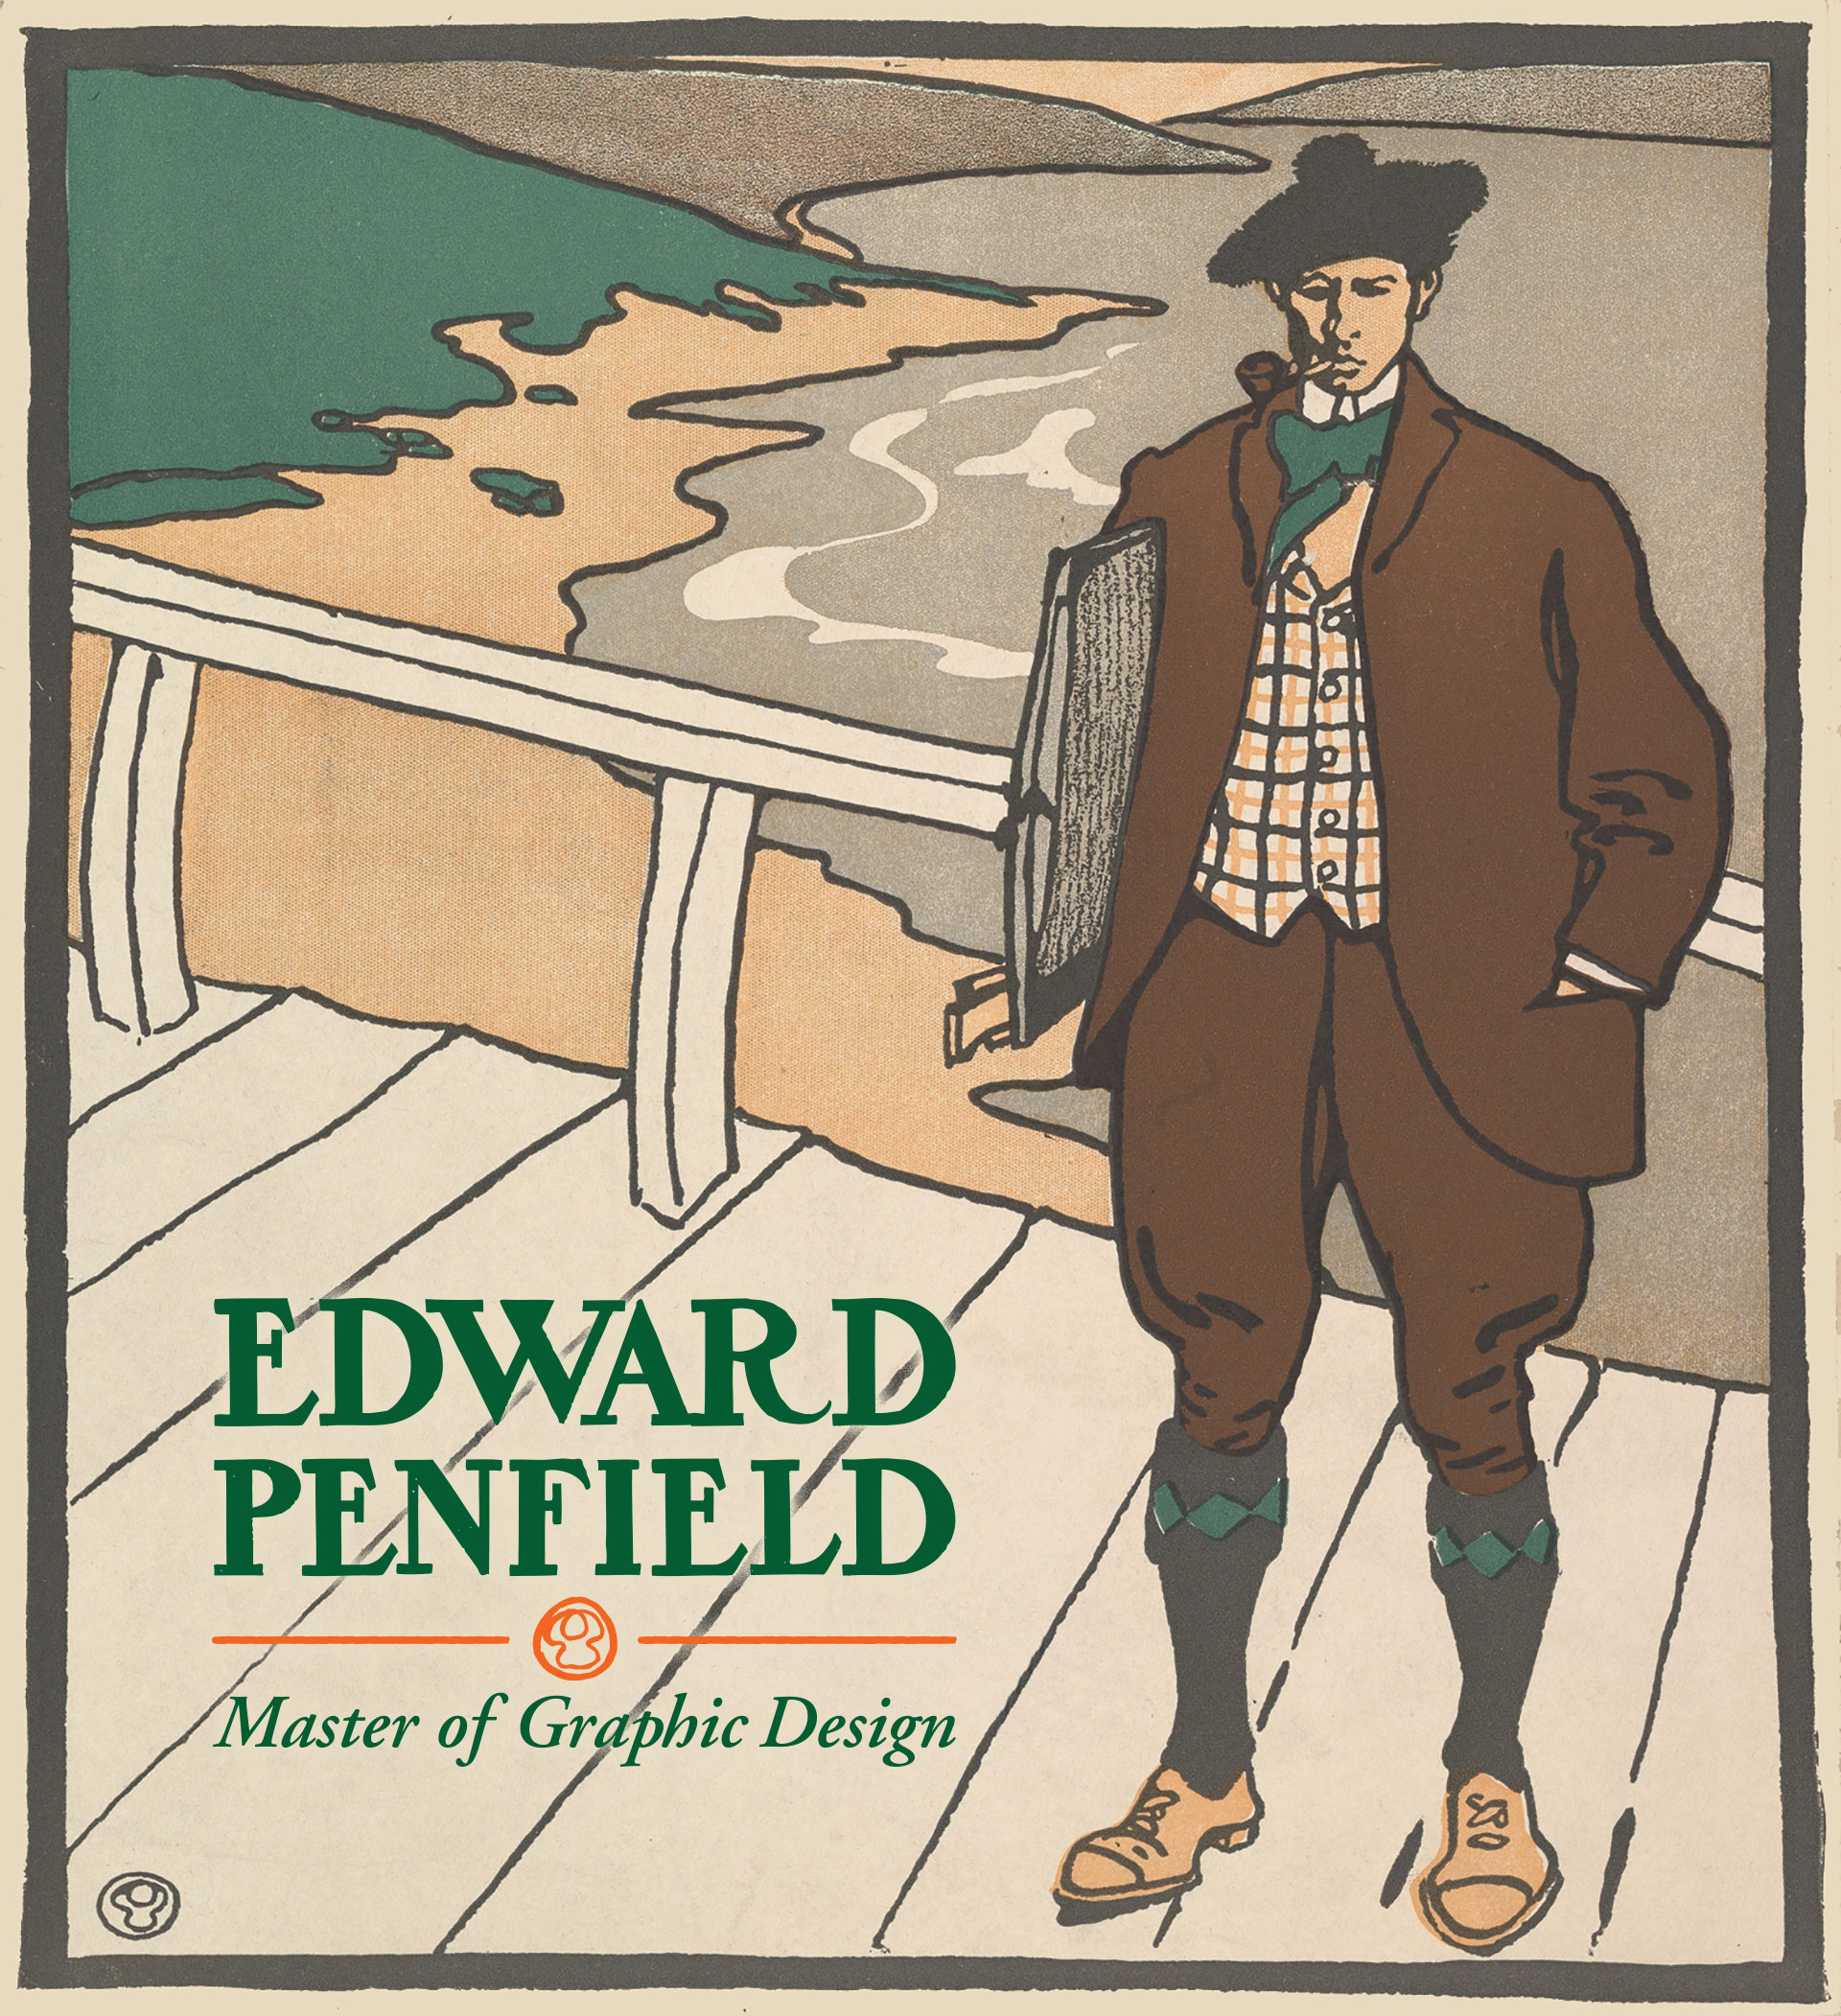 Edward Penfield (1866-1925), poster artist, illustrator and master of graphic design